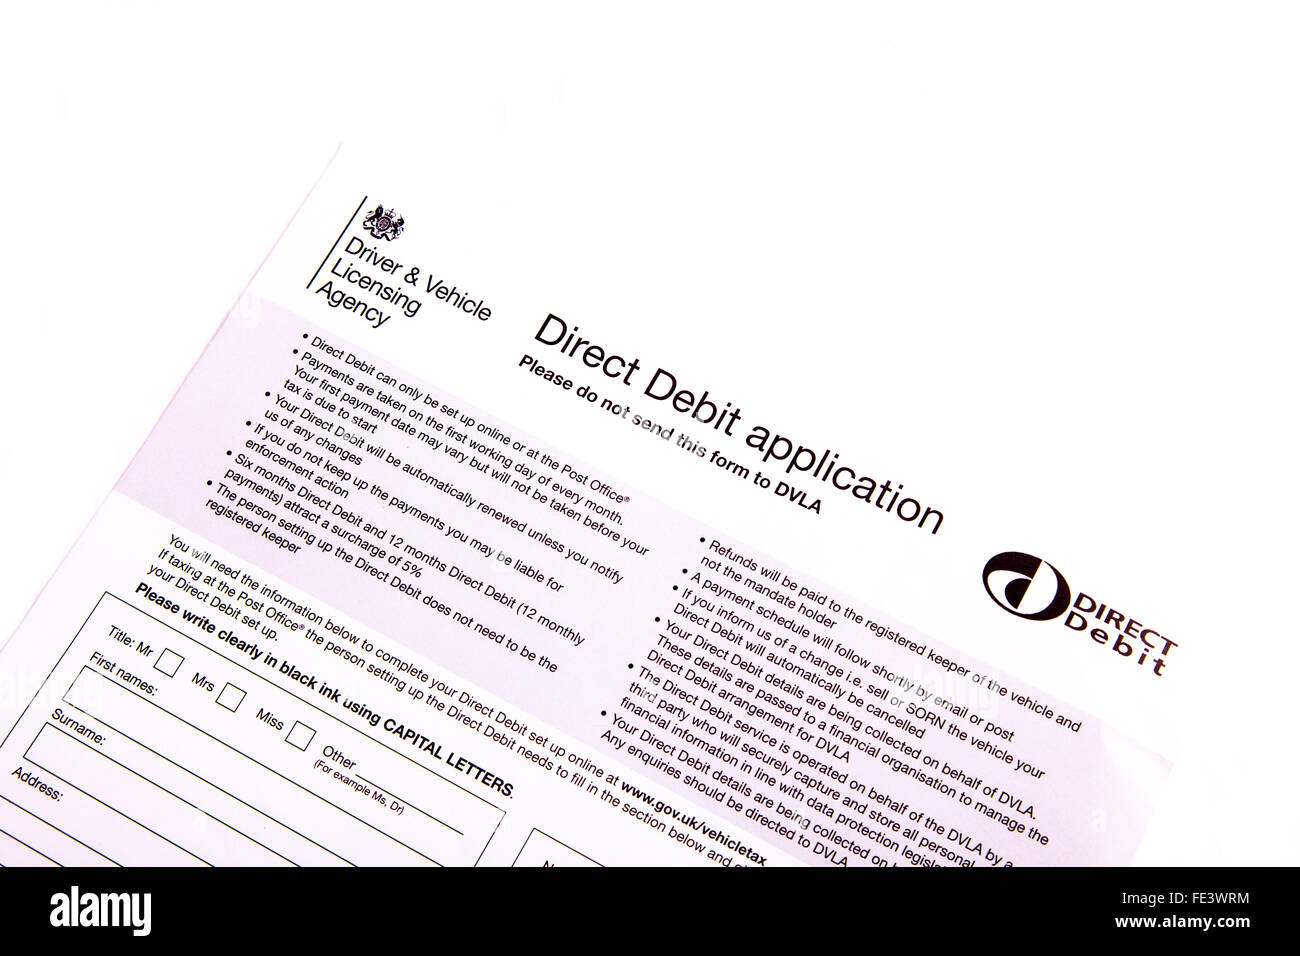 Direct debit application form DVLA Driver & Vehicle Licensing agency cut out cutout white background isolated - Stock Image